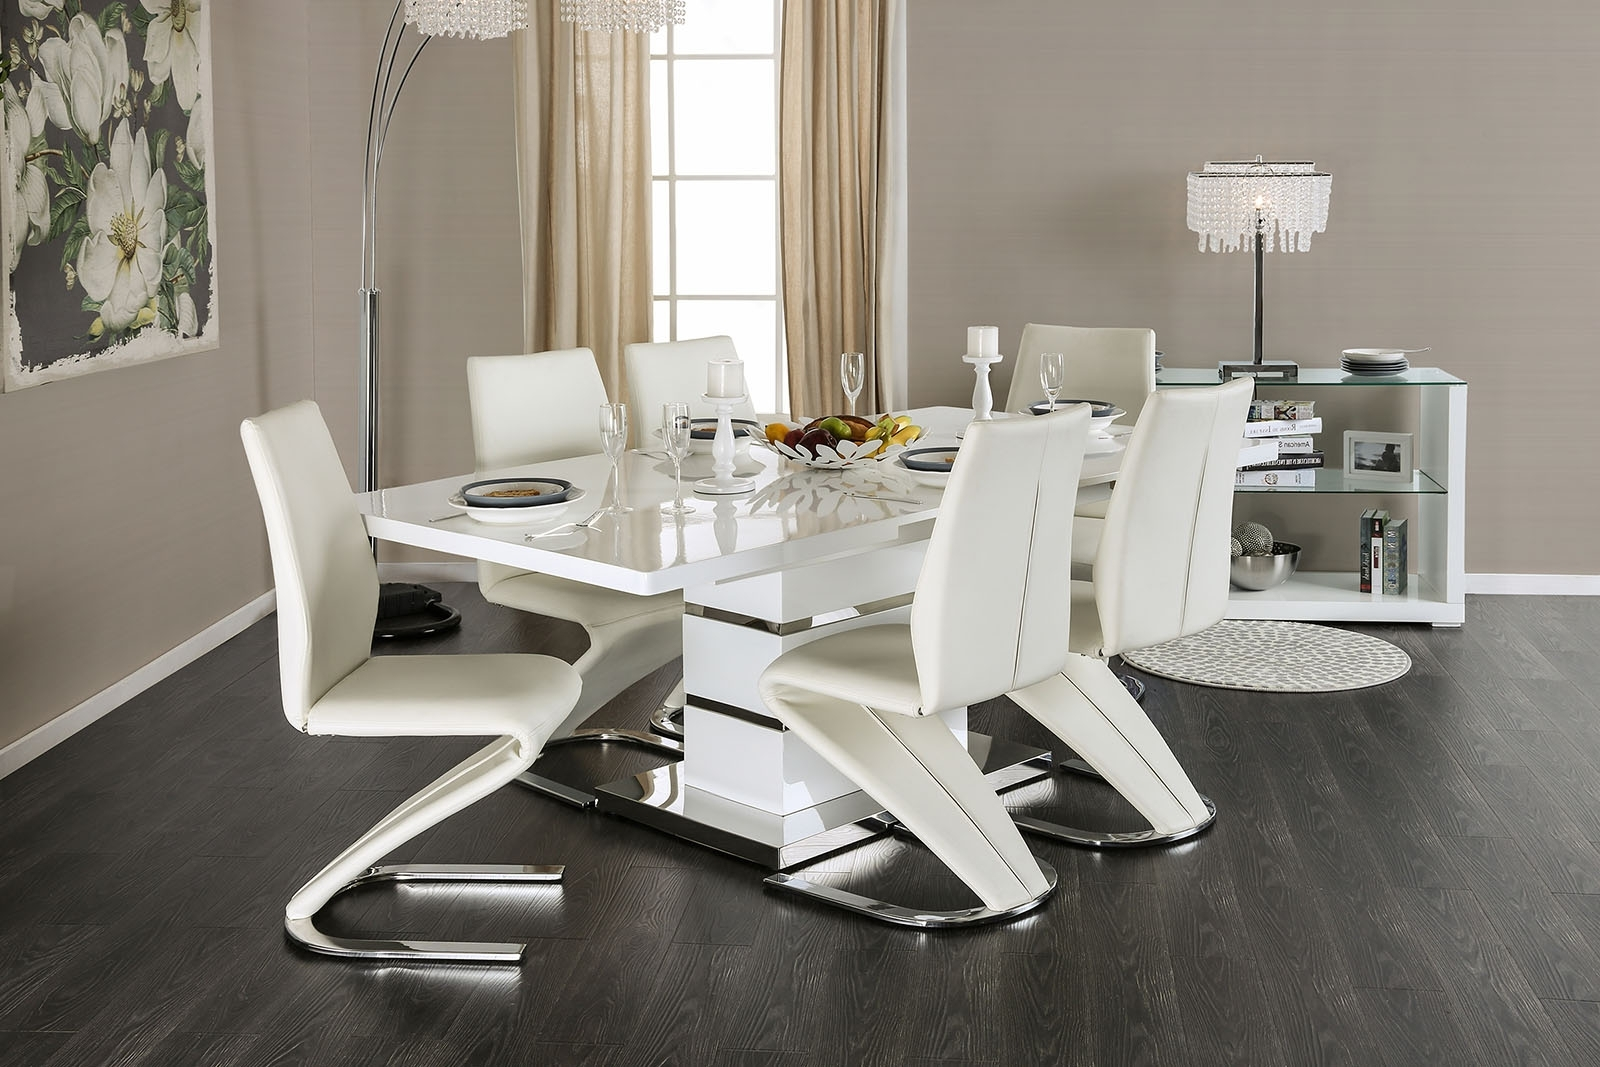 Midvale Contemporary Style White High Gloss Lacquer Finish & Chrome Regarding Well Known High Gloss Dining Room Furniture (View 25 of 25)